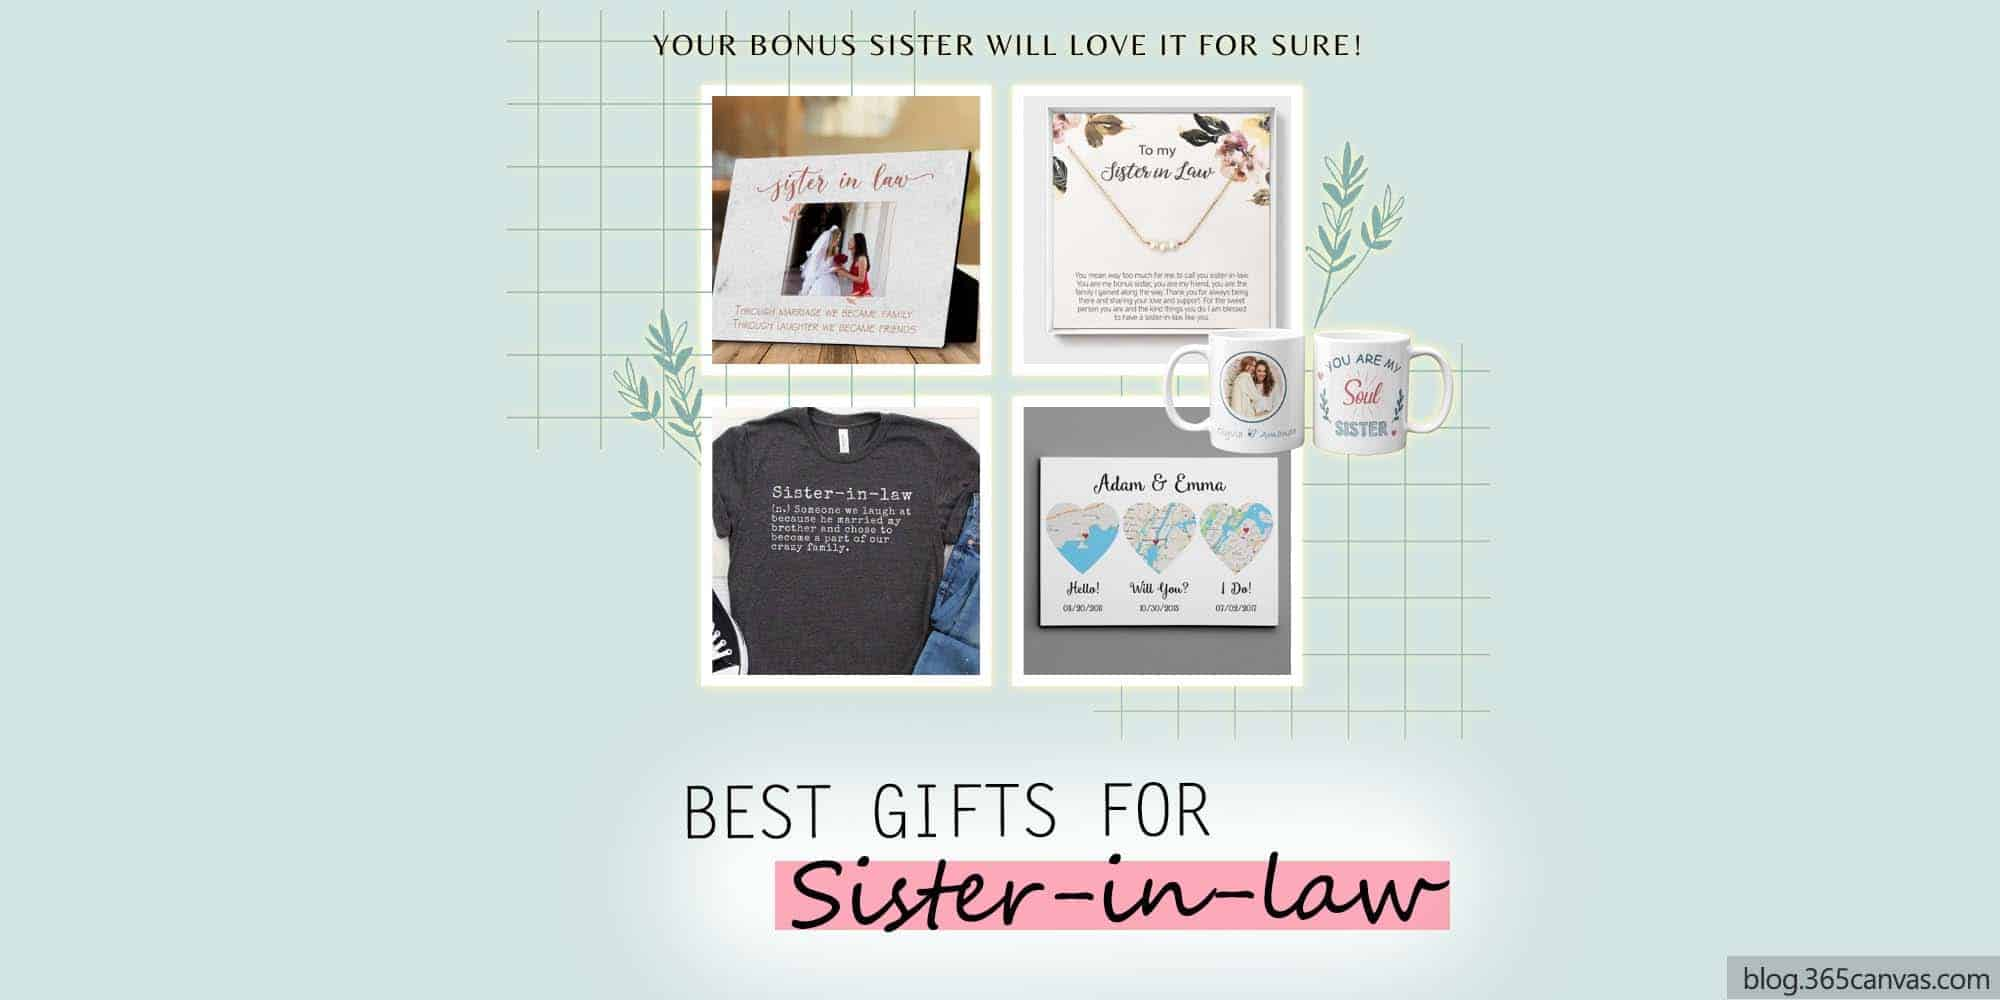 32 Best Gifts For Sister-In-Law That Every Bonus Sister Will Love (2021)